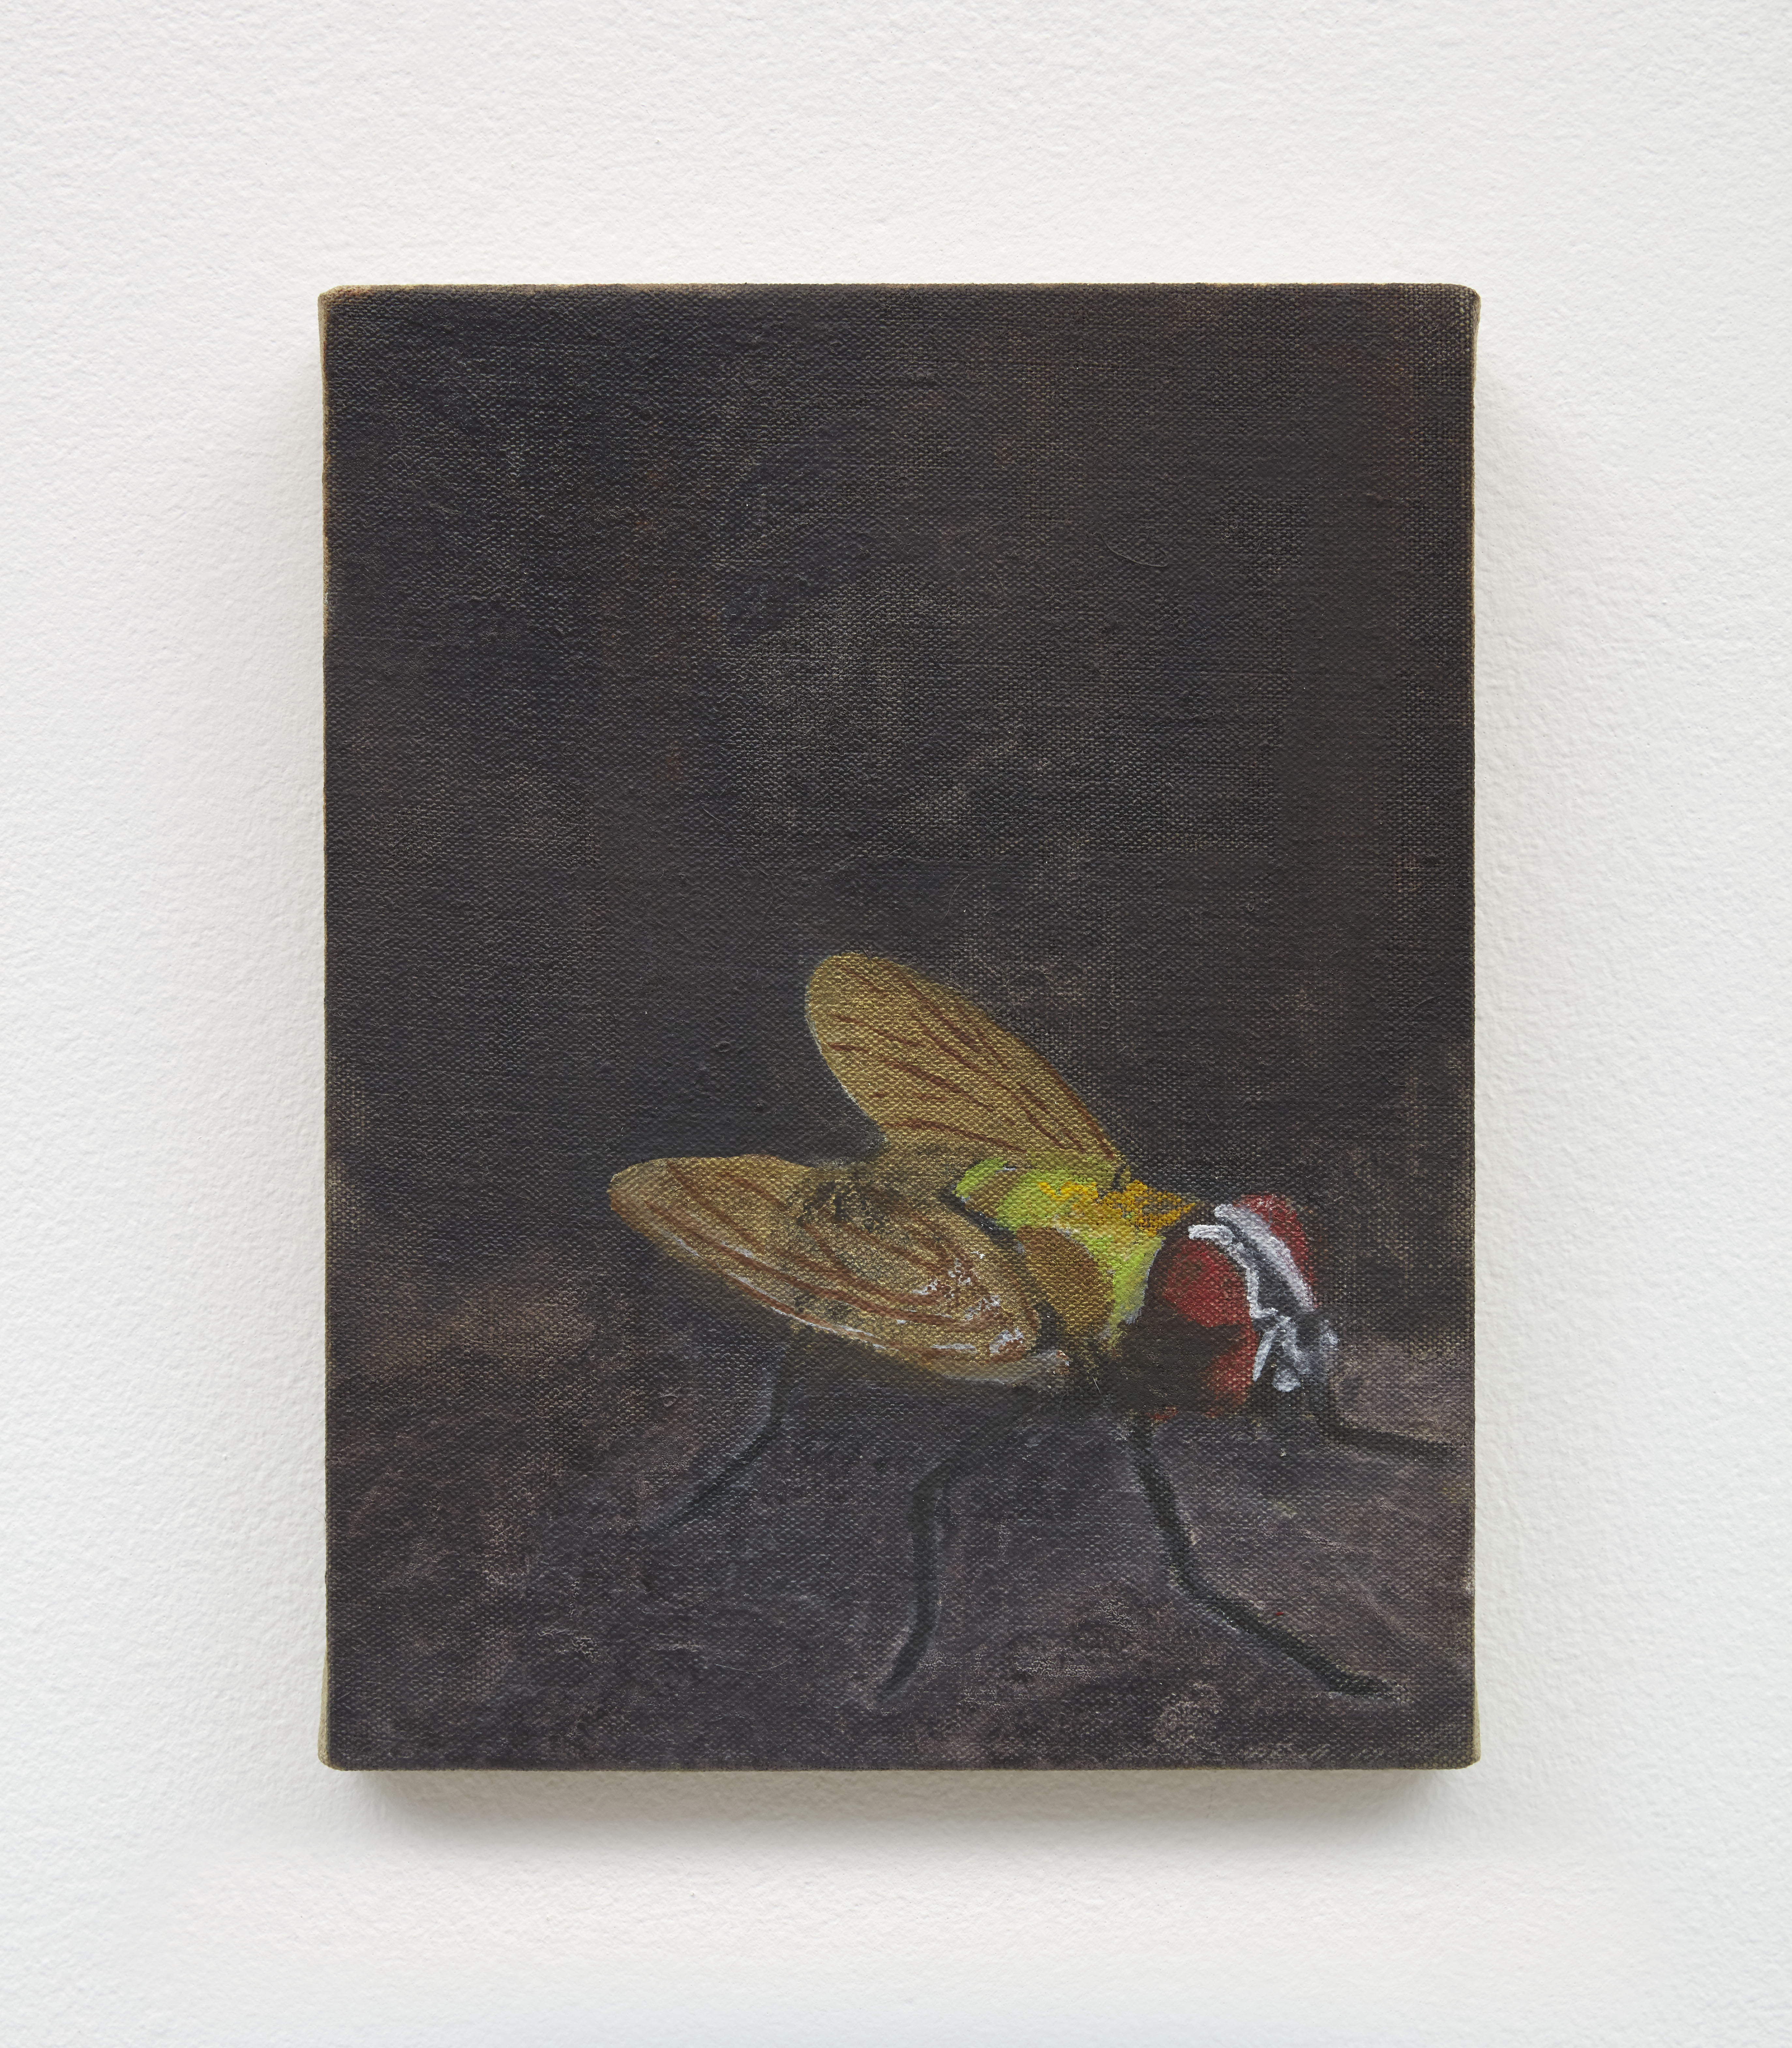 After Dark, 2020 Oil on linen 11 x 8.5 inches 27.94 x 21.59 cm